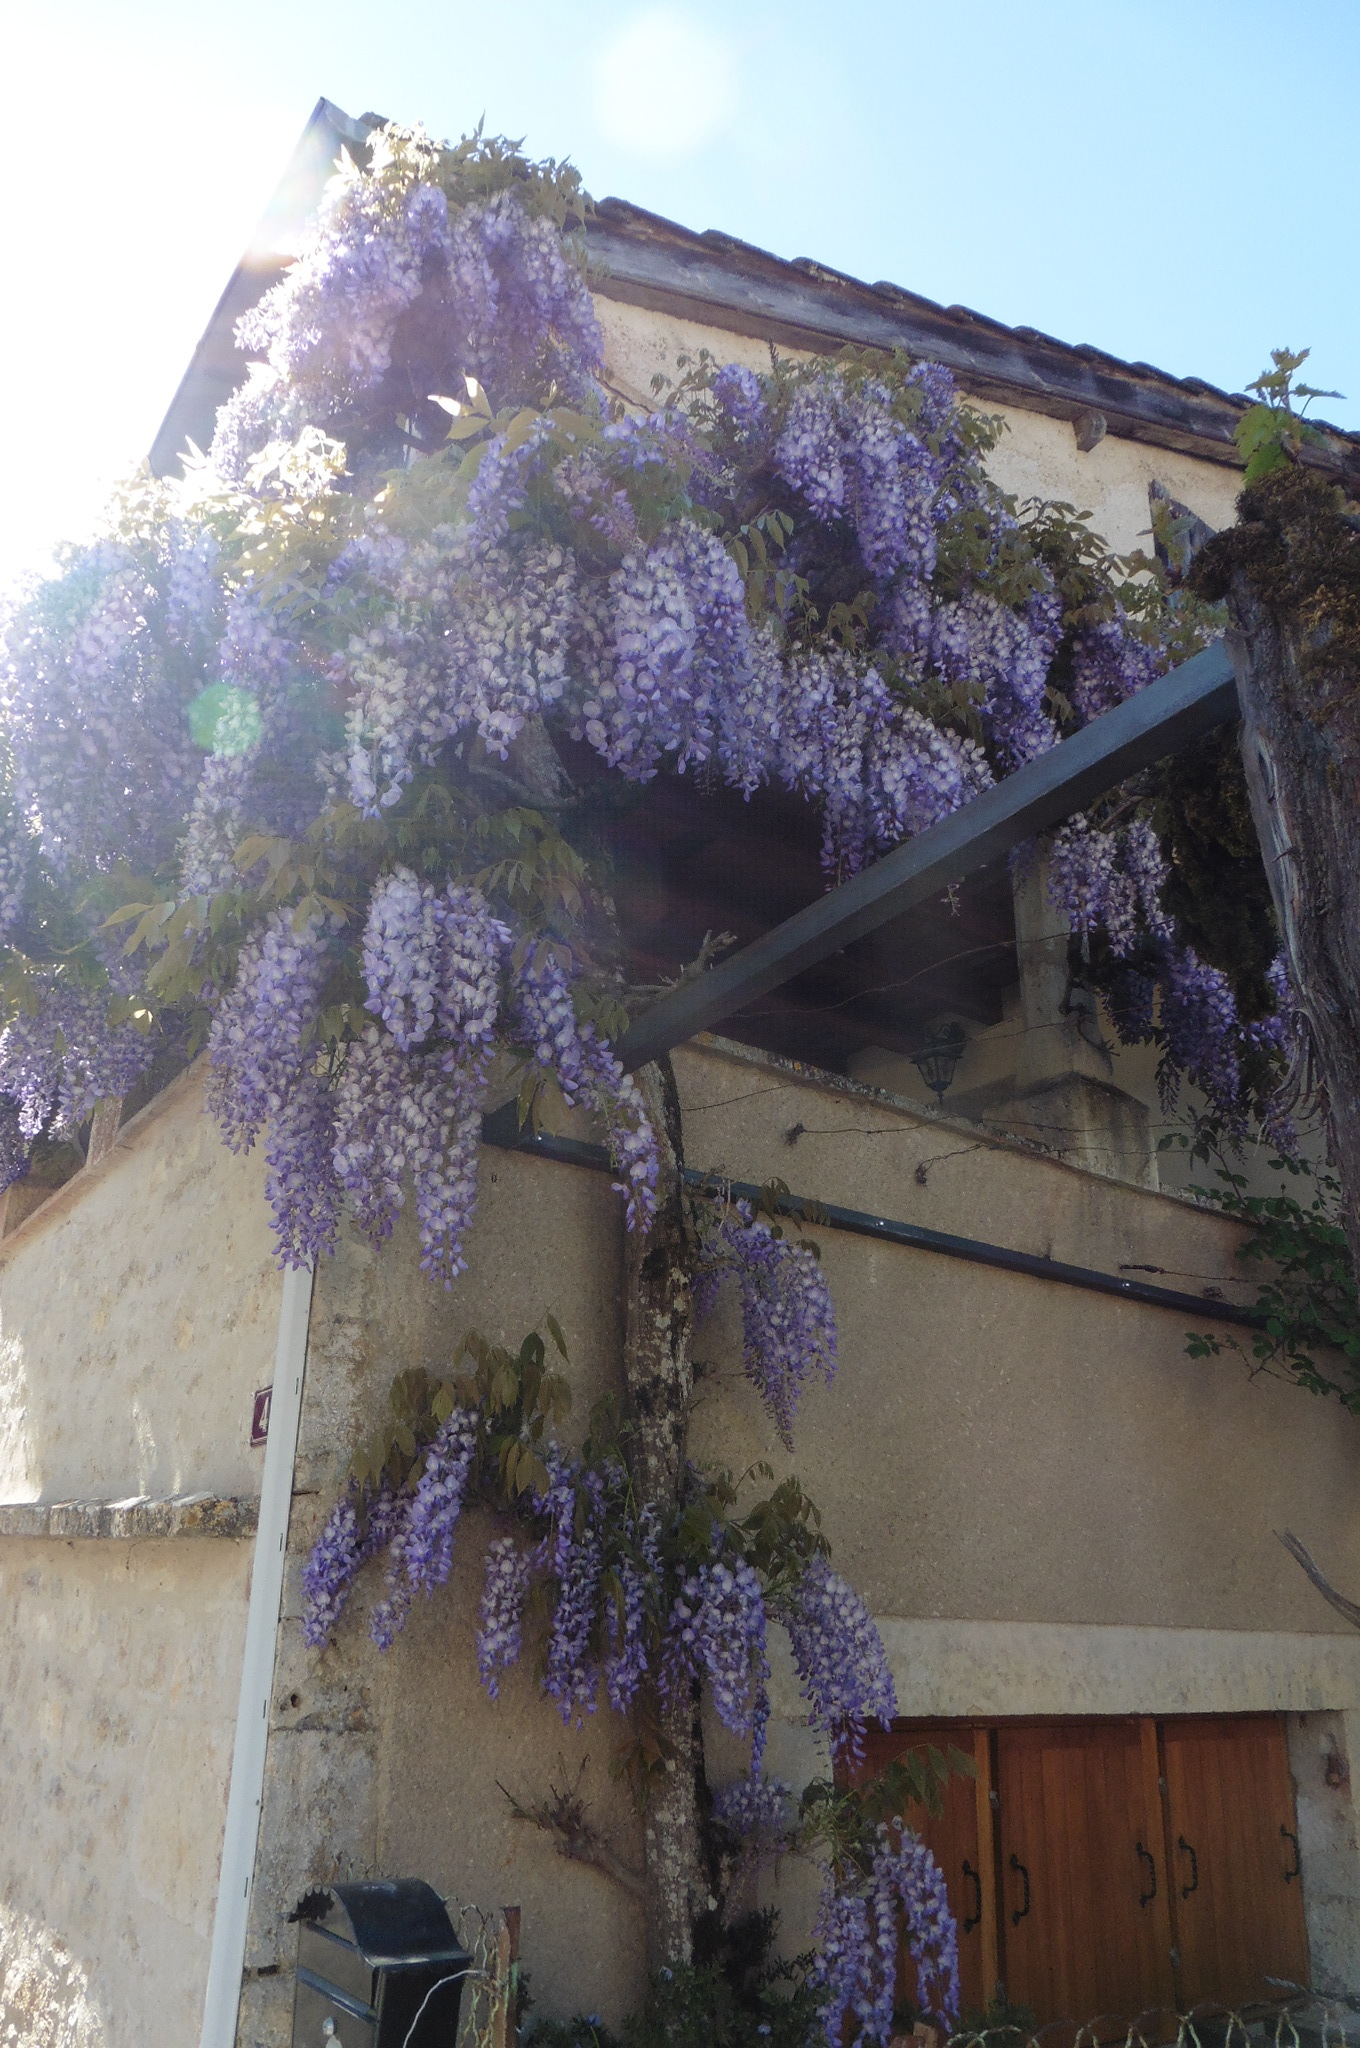 The beautiful wisteria almost filling this terrace area.